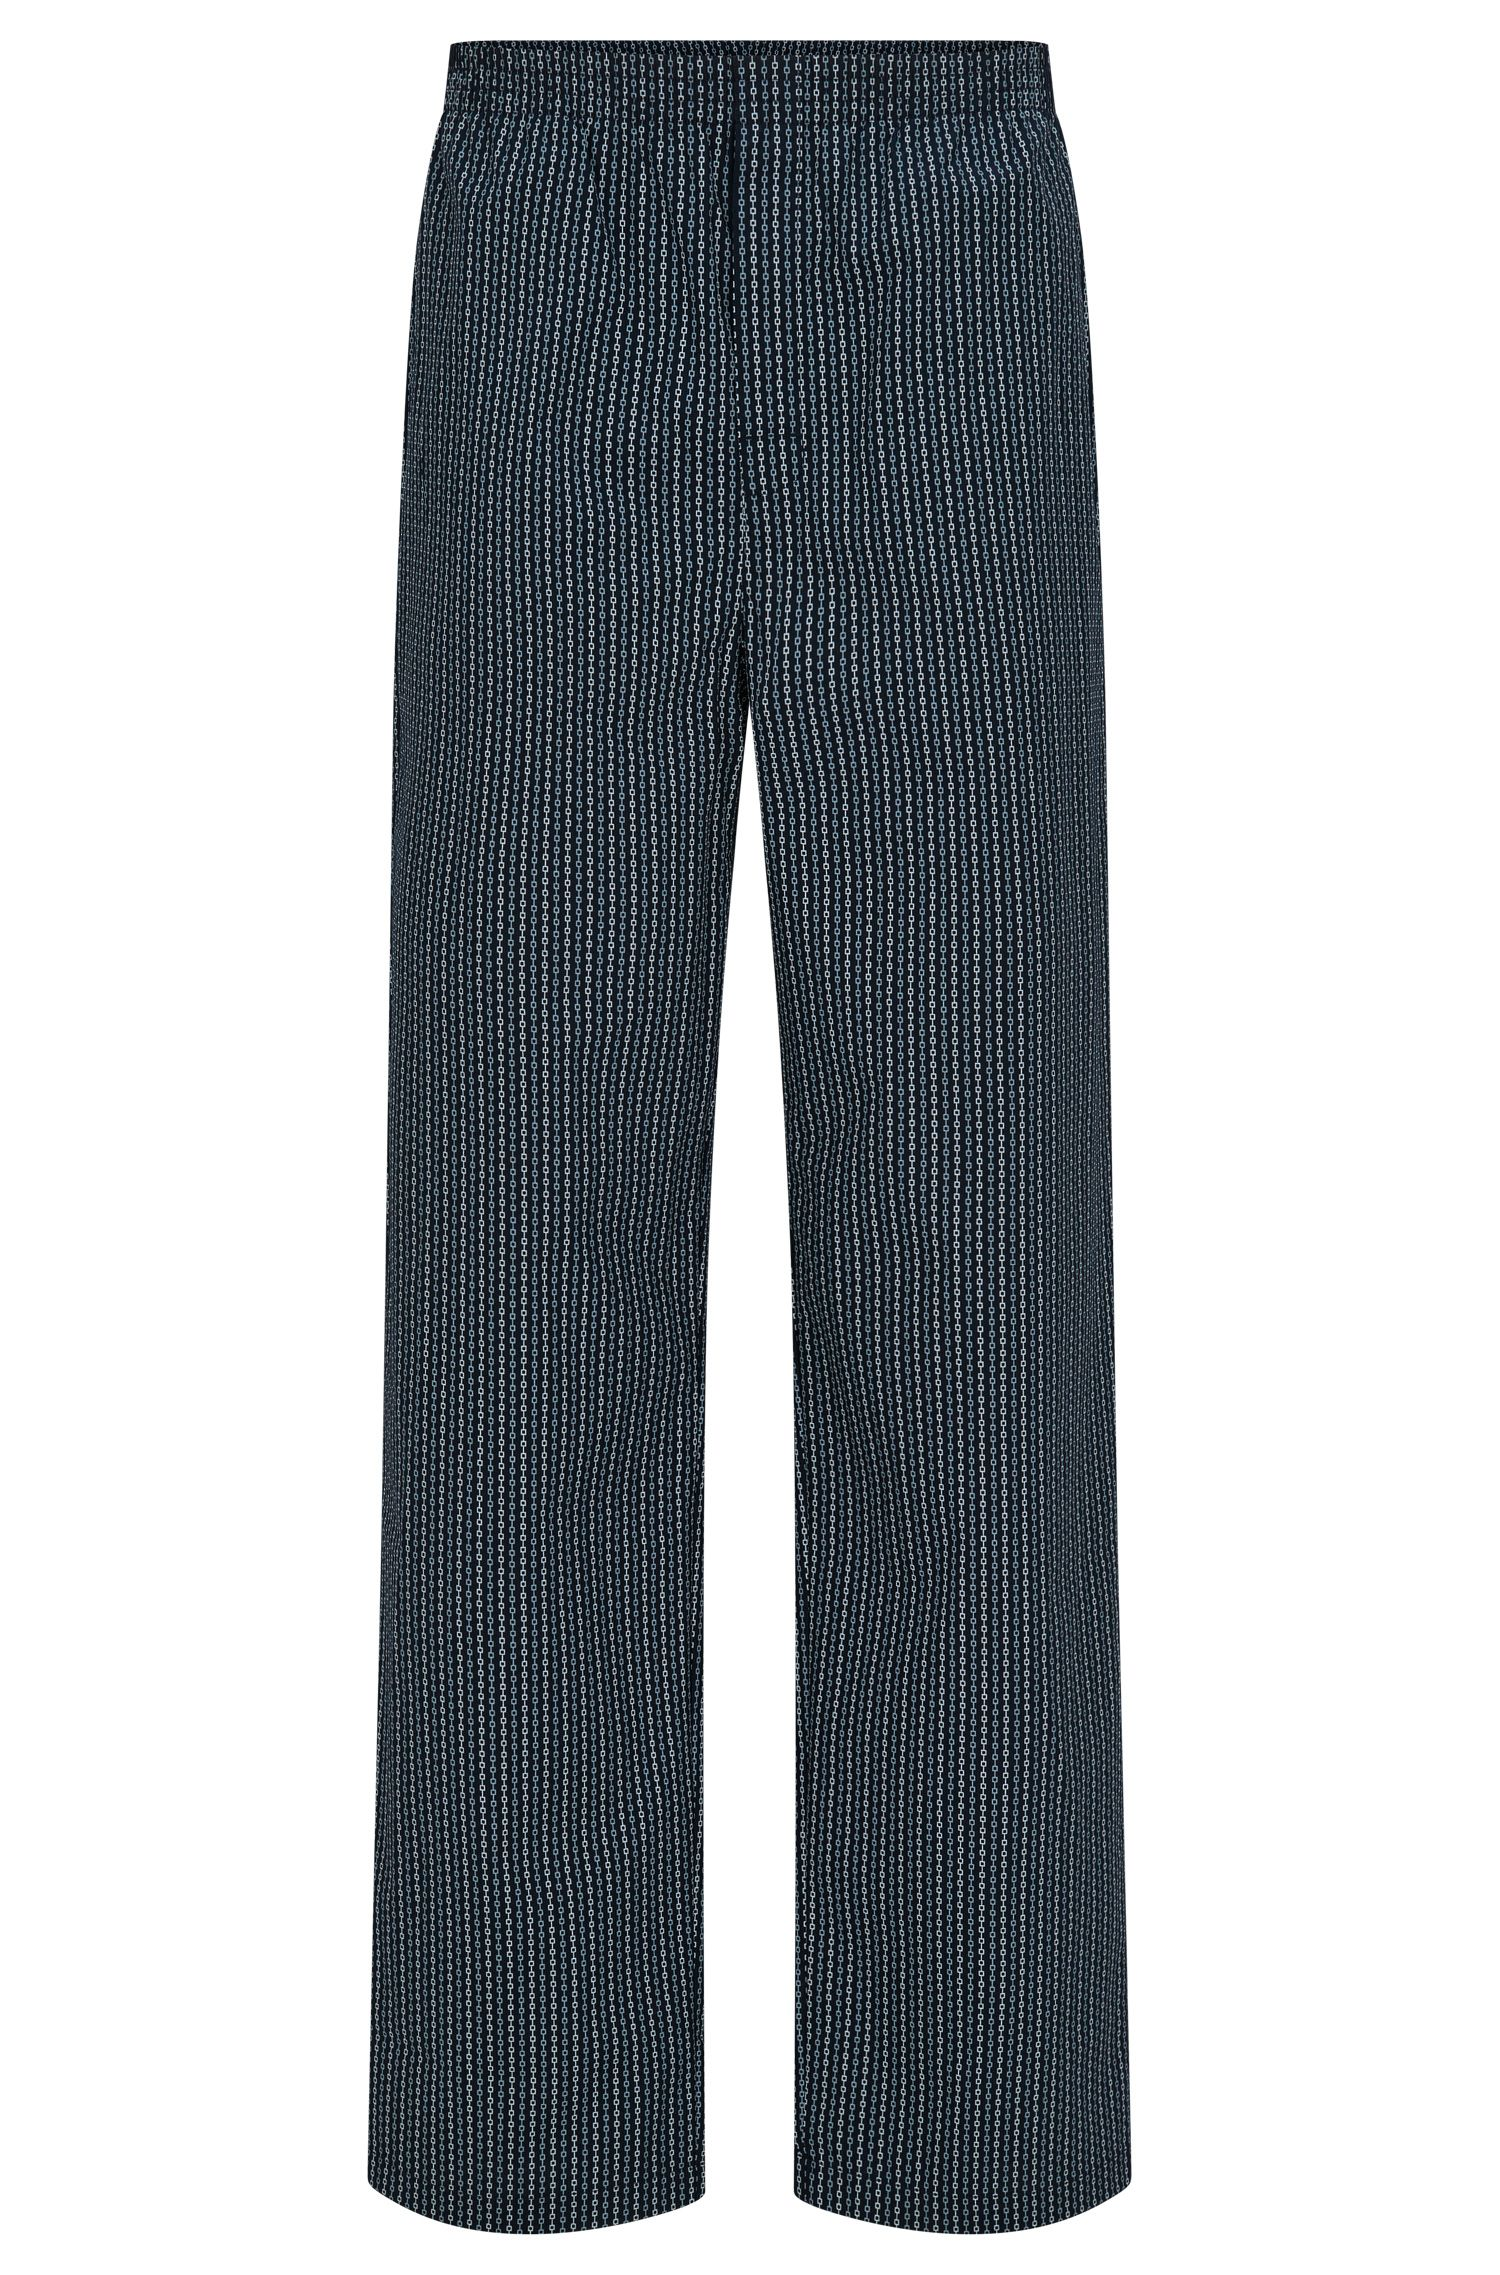 "Pantaloni del pigiama con disegni ""all over"" in cotone: 'Long Pant CW'"